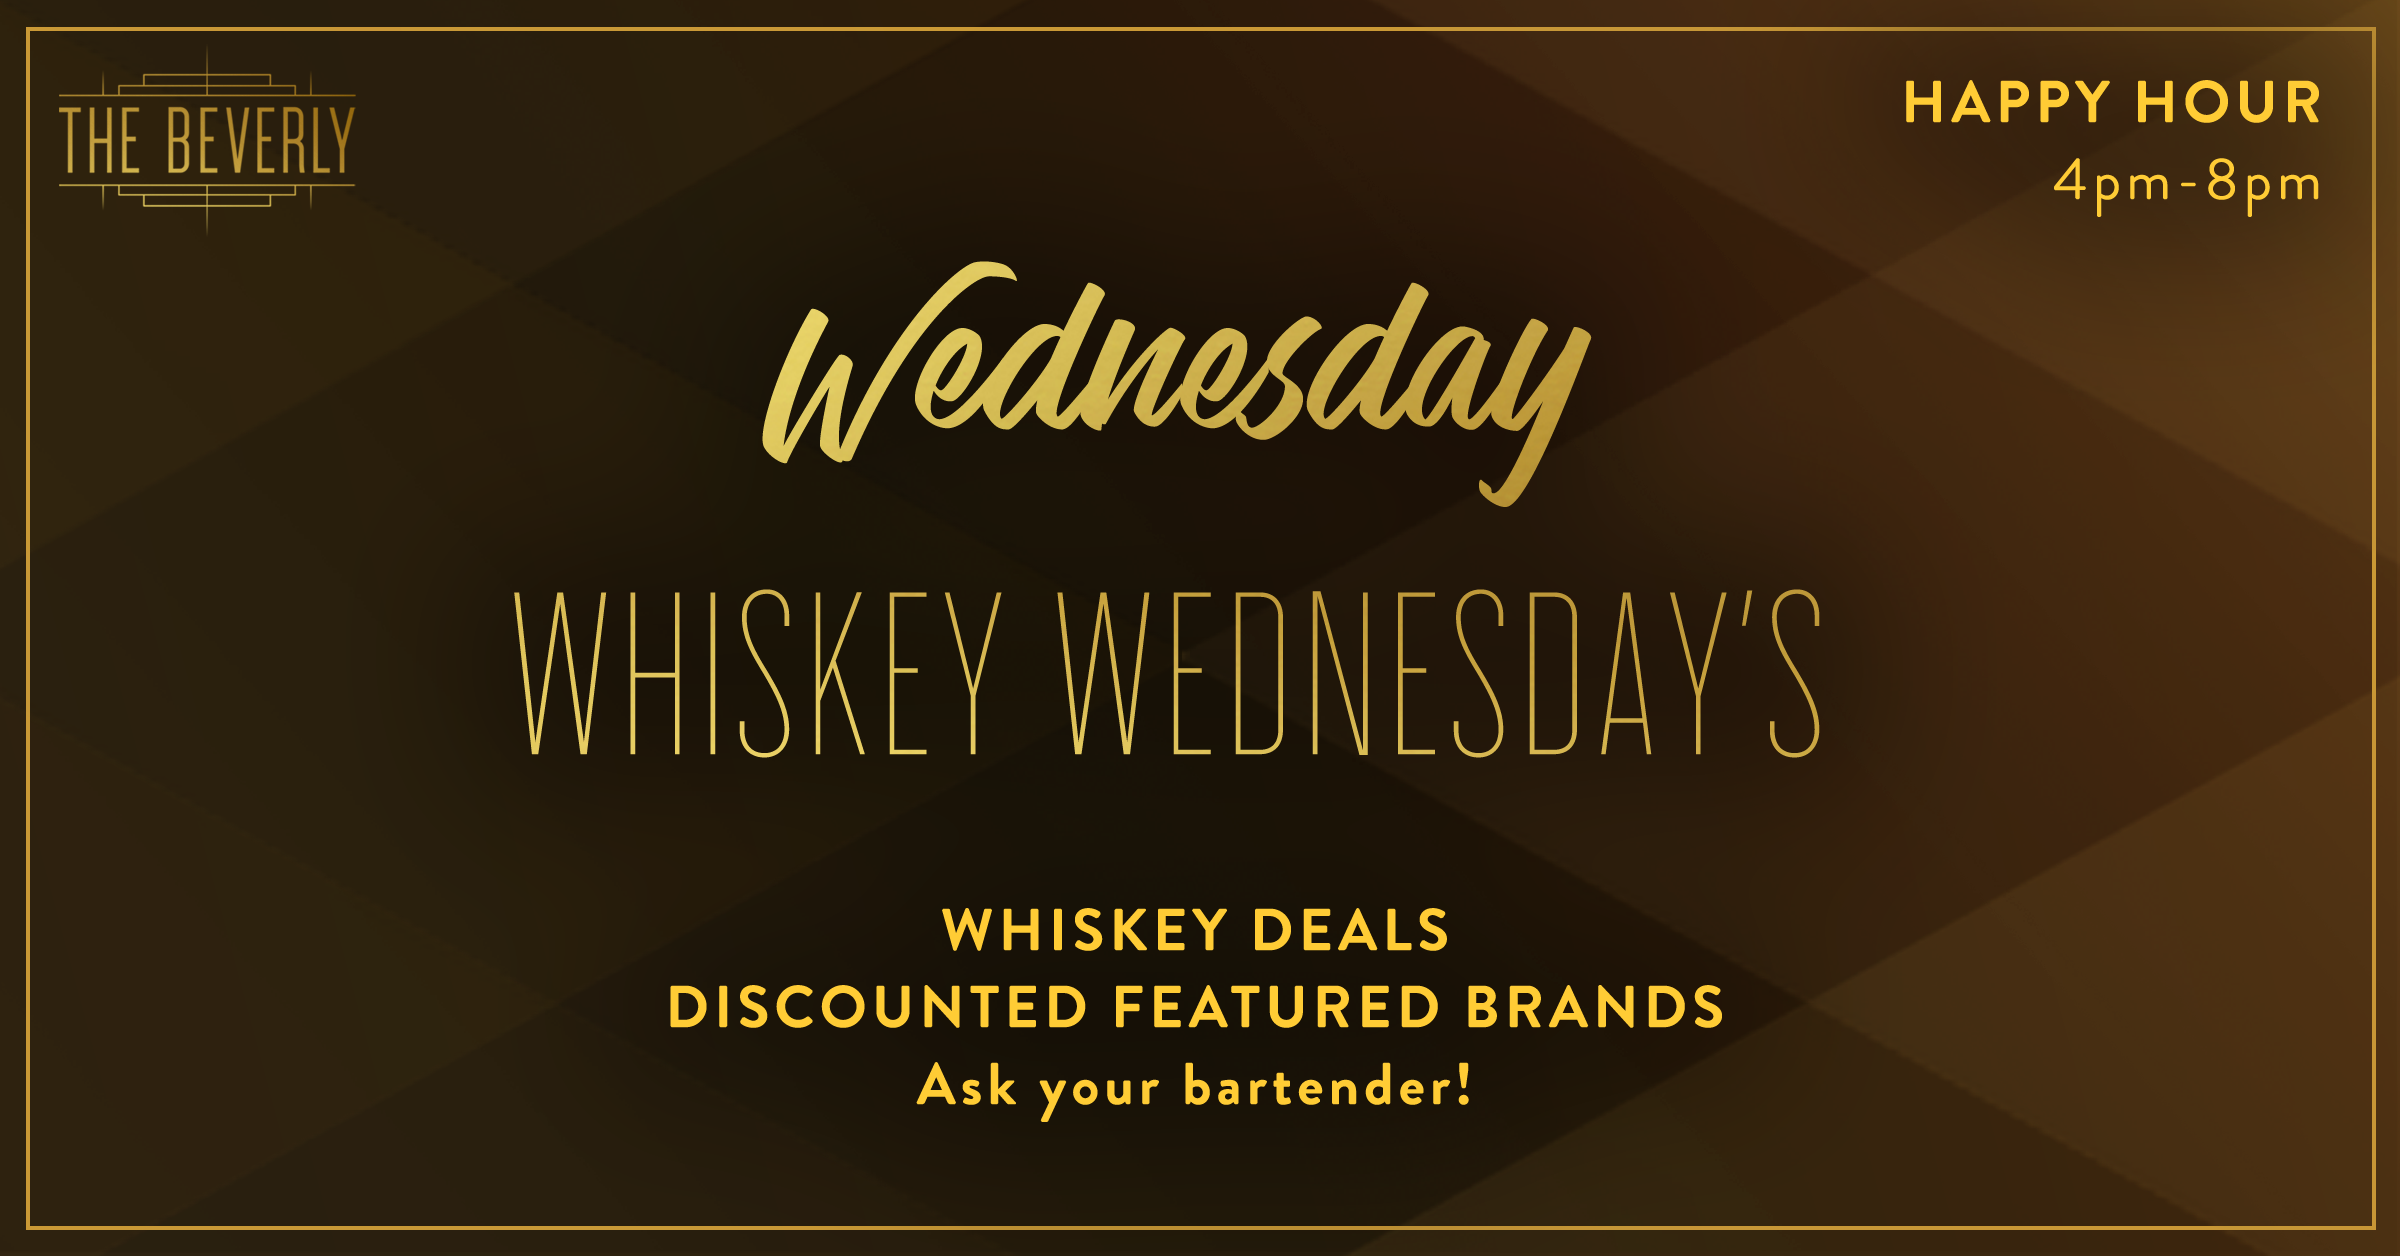 Whiskey wednesdays